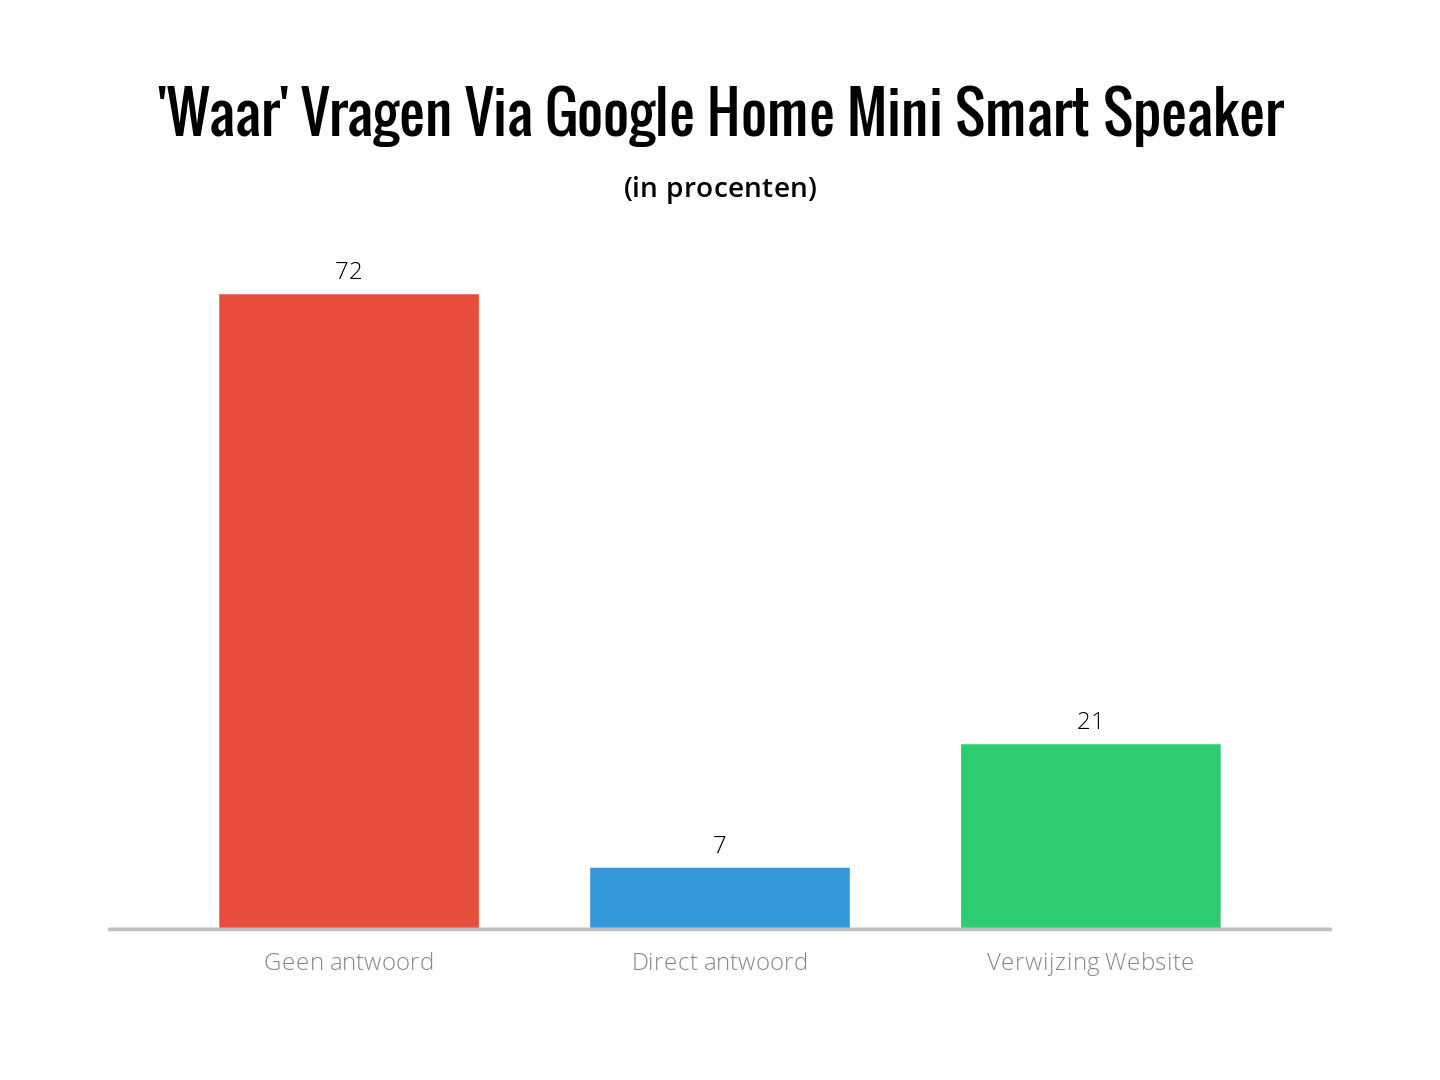 waar vragen via google home mini smart speaker